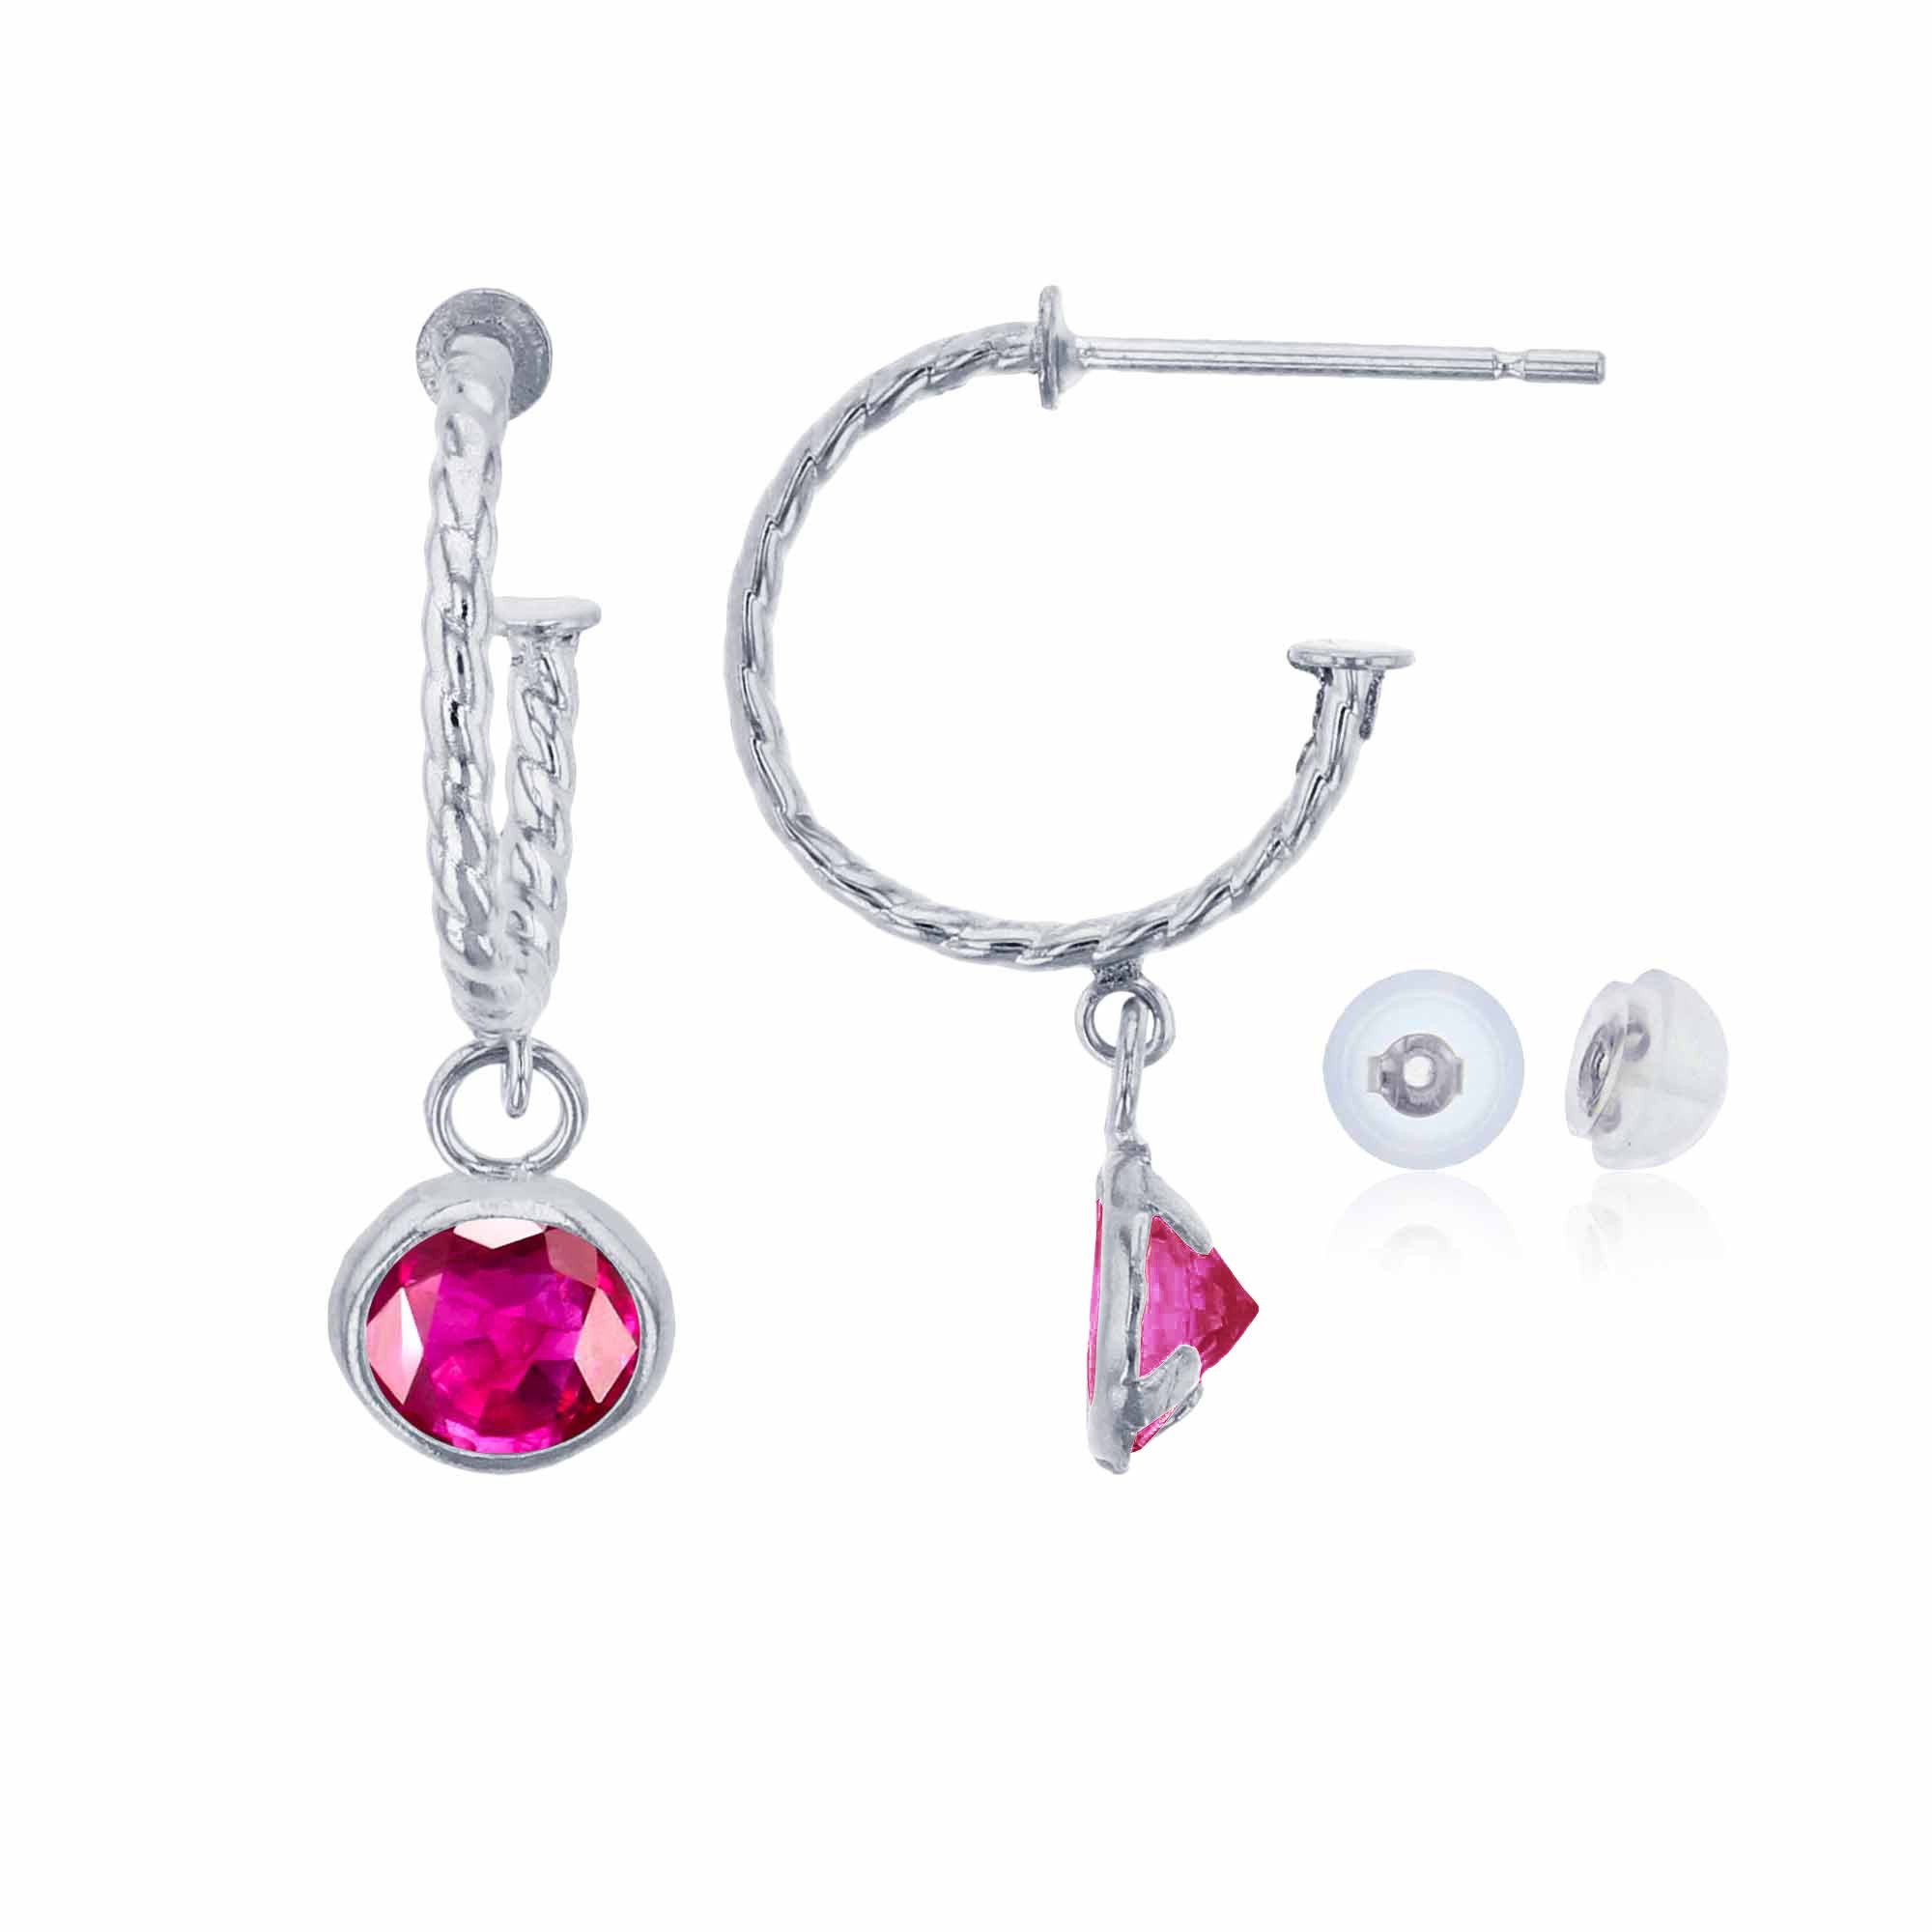 10K White Gold 12mm Rope Half-Hoop with 4mm Round Glass Filled Ruby Bezel Drop Earring with Silicone Back